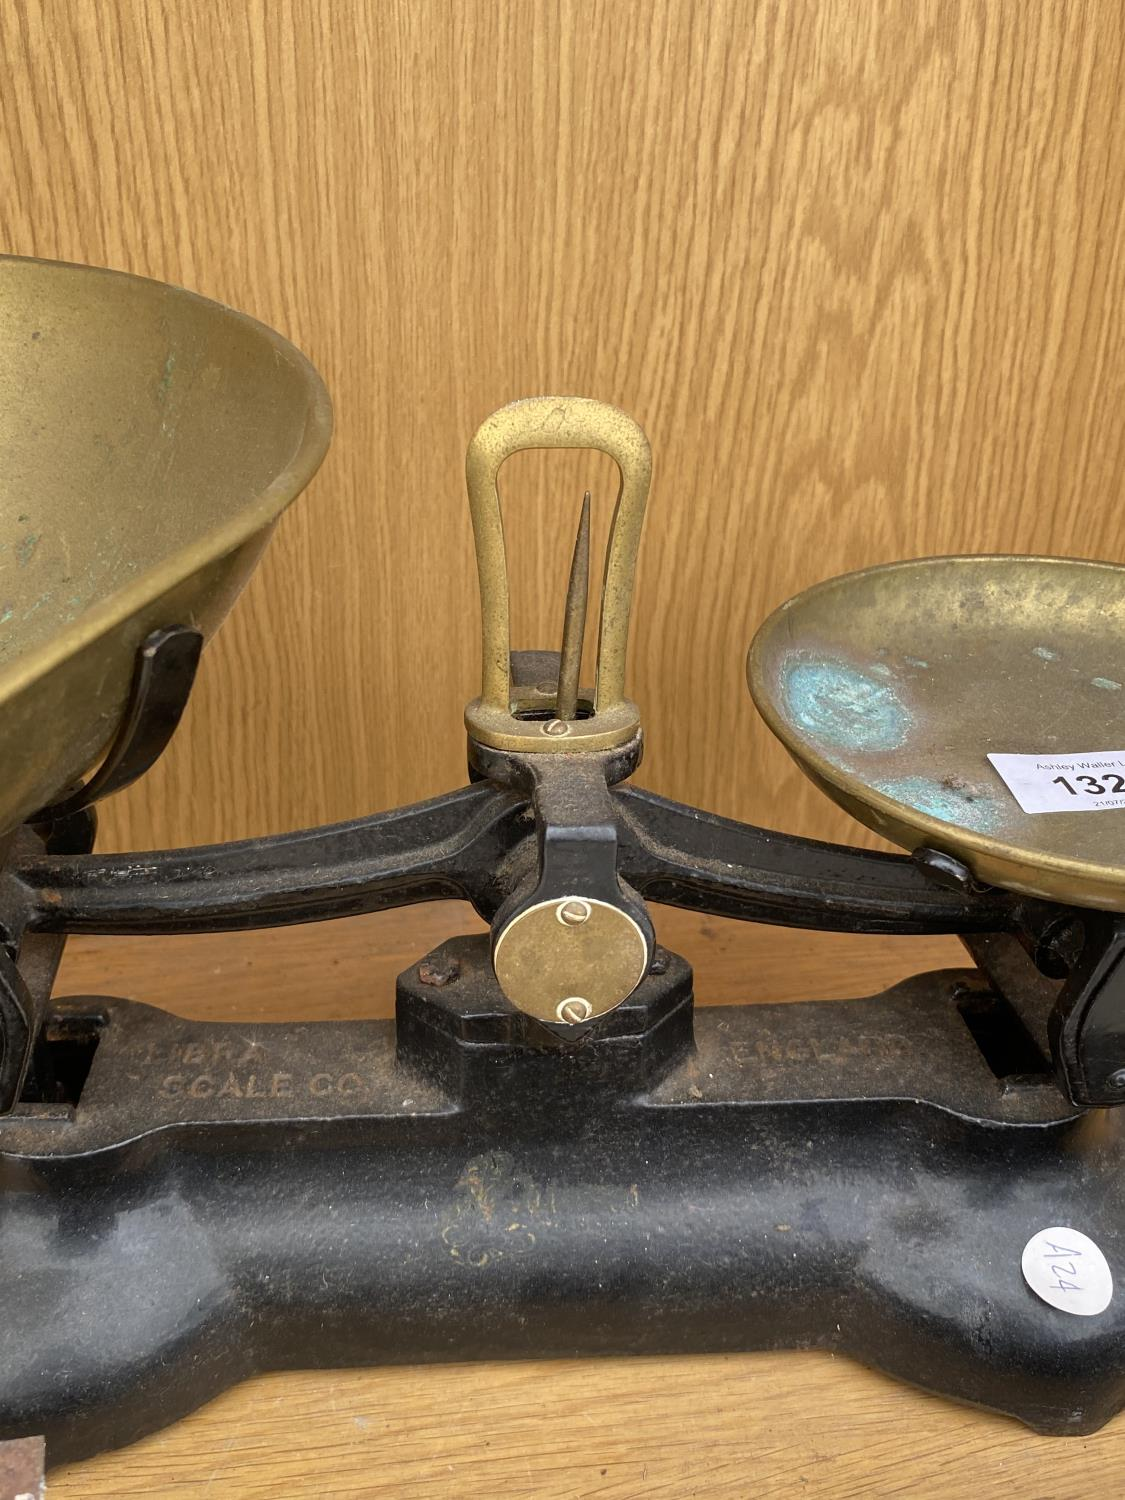 A PAIR OF BRASS KITCHEN SCALES - Image 2 of 4